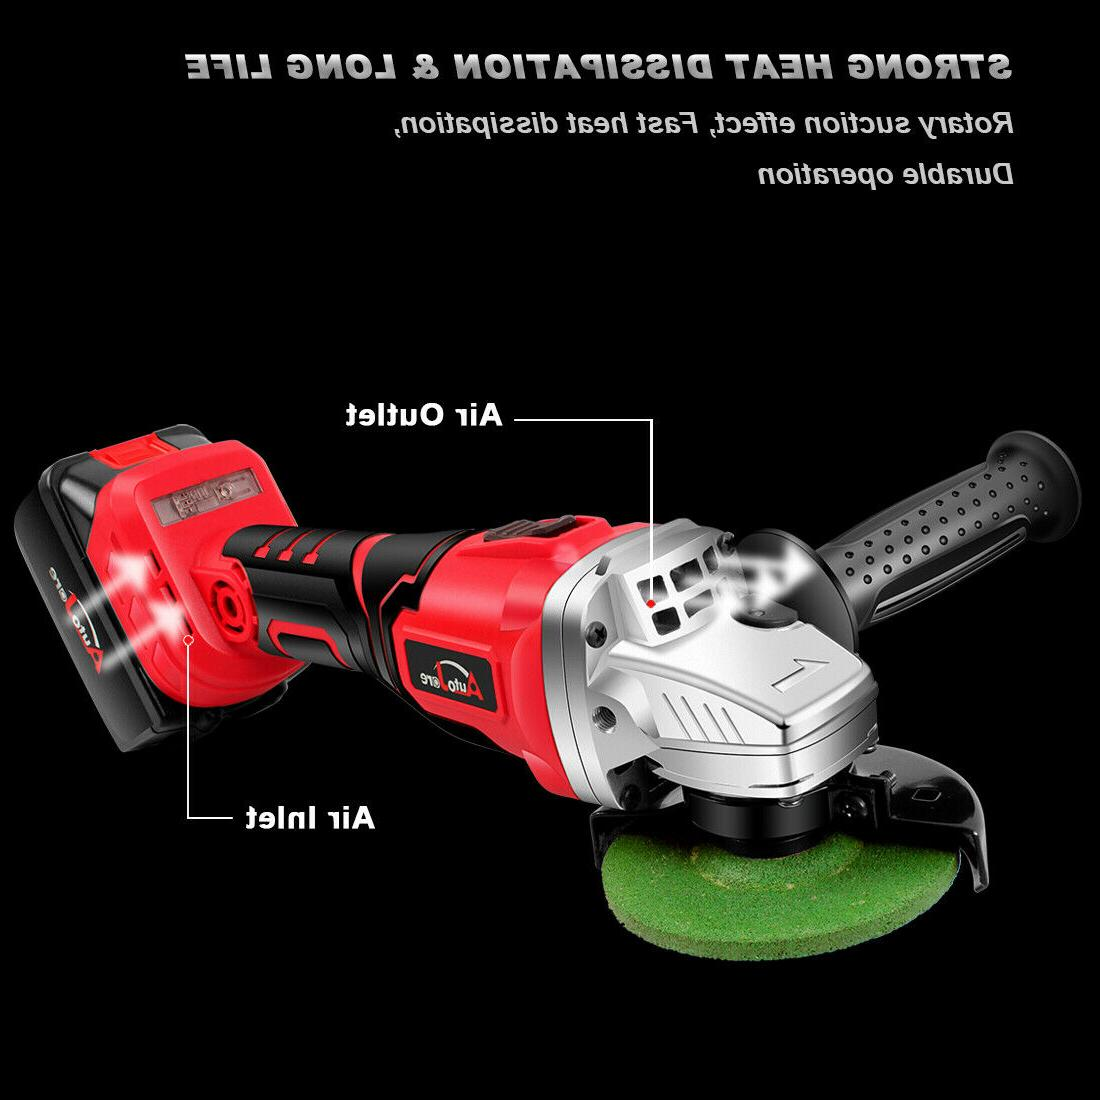 20V 18V Grinder brushless Cut Power